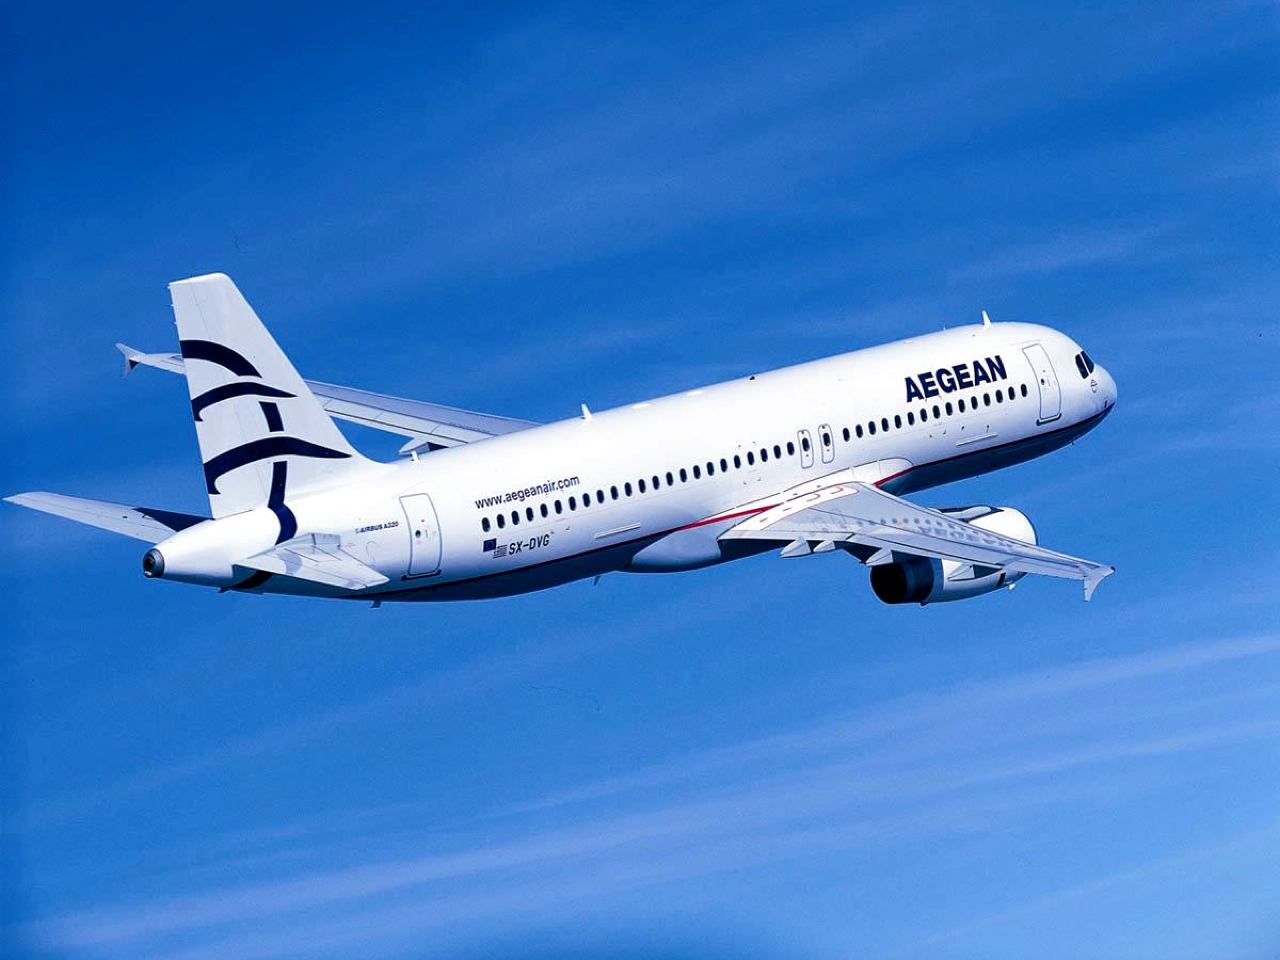 AEGEAN receives IATA's Fast Travel Gold Award